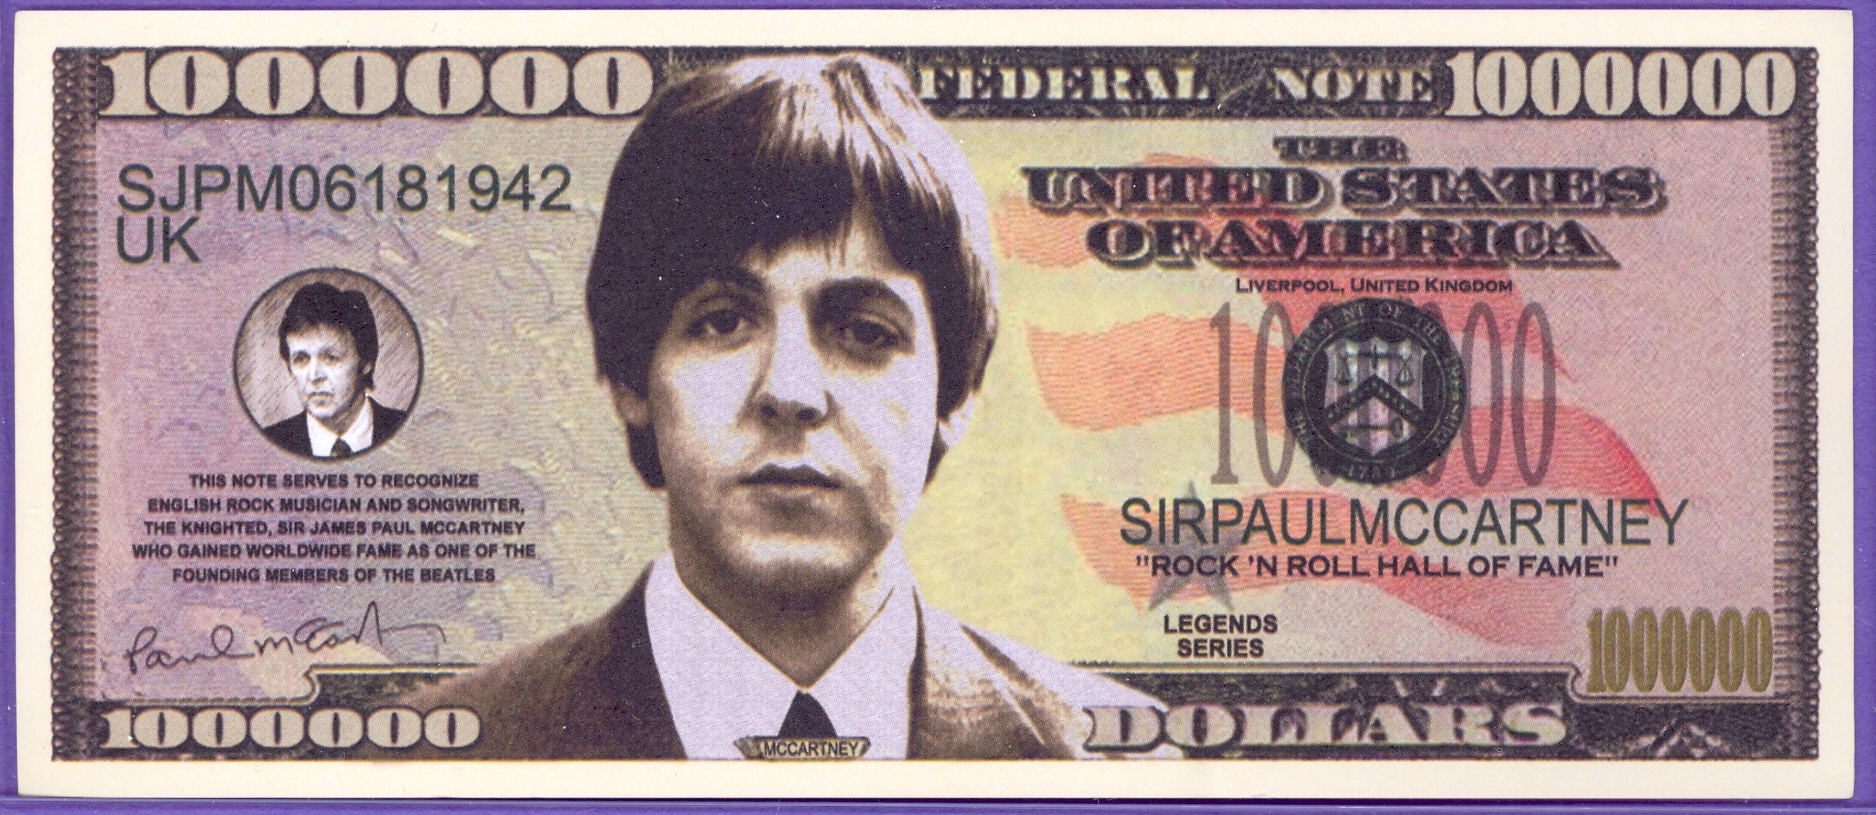 Sir Paul McCartney Million Dollar Note - The Beatles